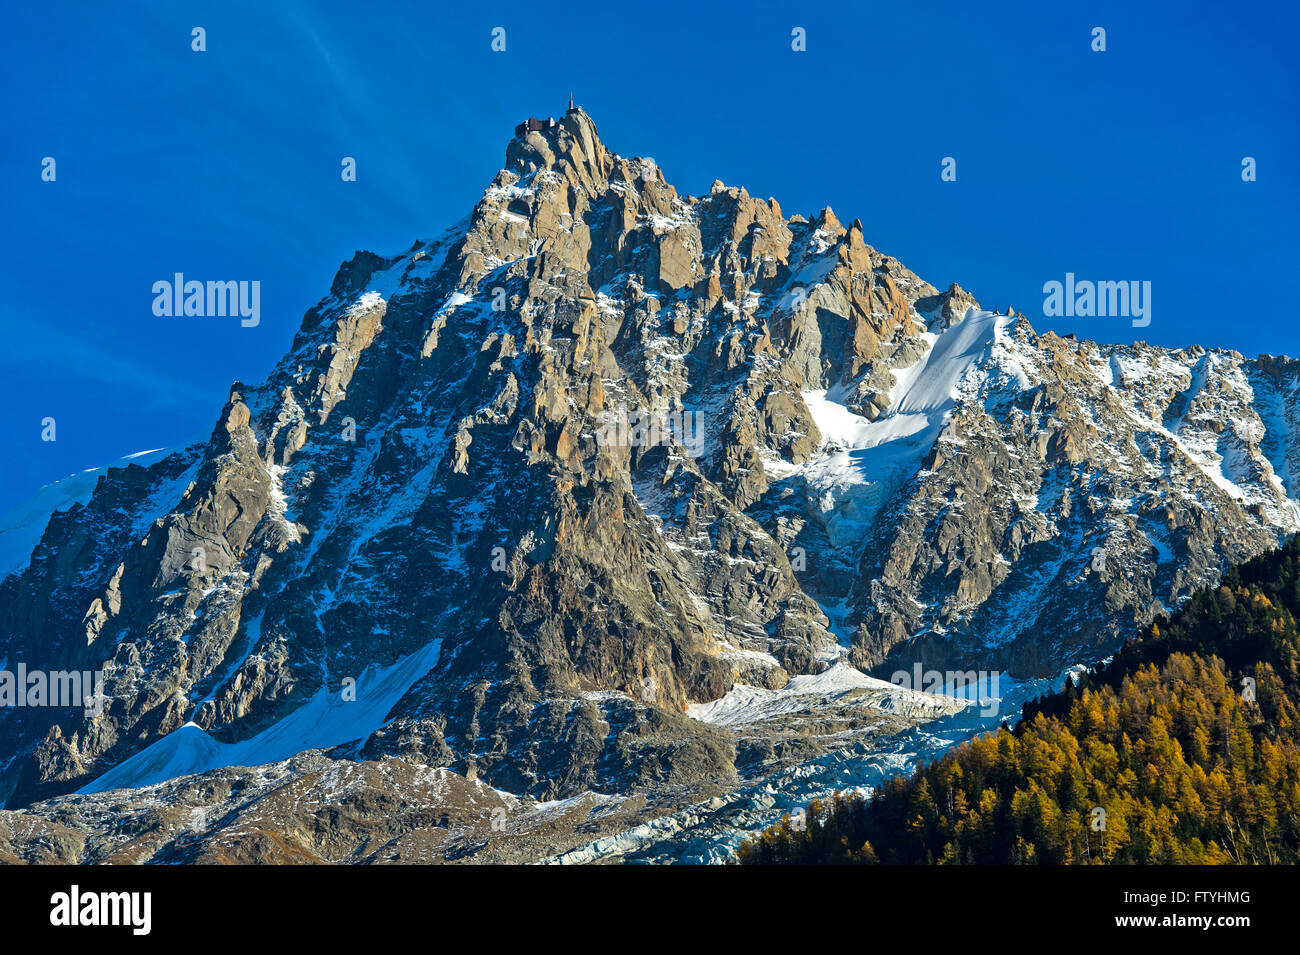 Rocky massif of the Aiguille du Midi peak with upper cable car station, Chamonix, Haute Savoie, France - Stock Image